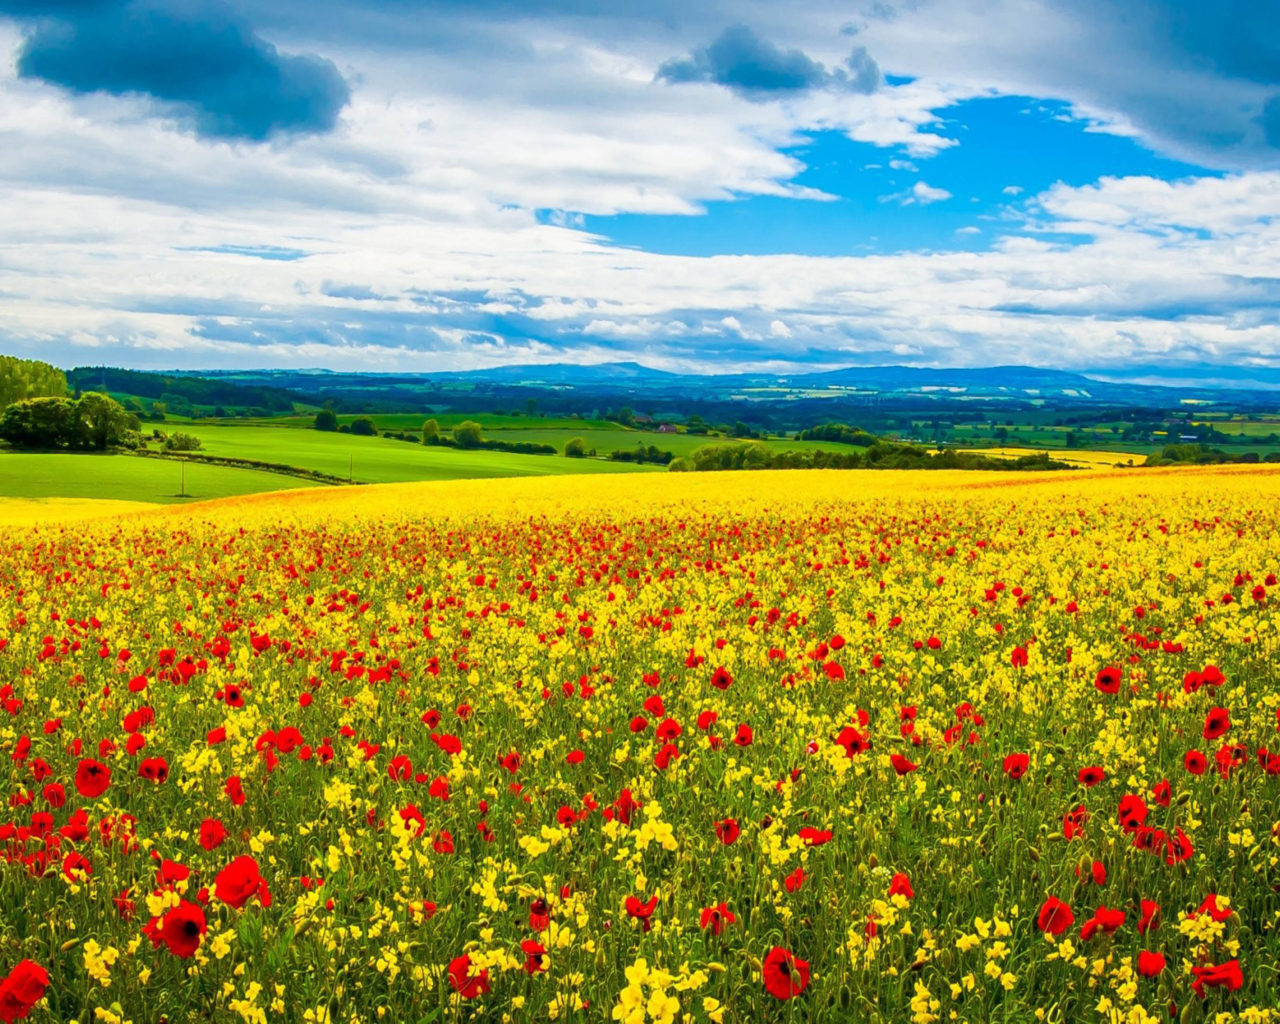 Fire And Water Hd Wallpapers Poppy Field Wild Flowers Spring Desktop Hd Wallpapers For